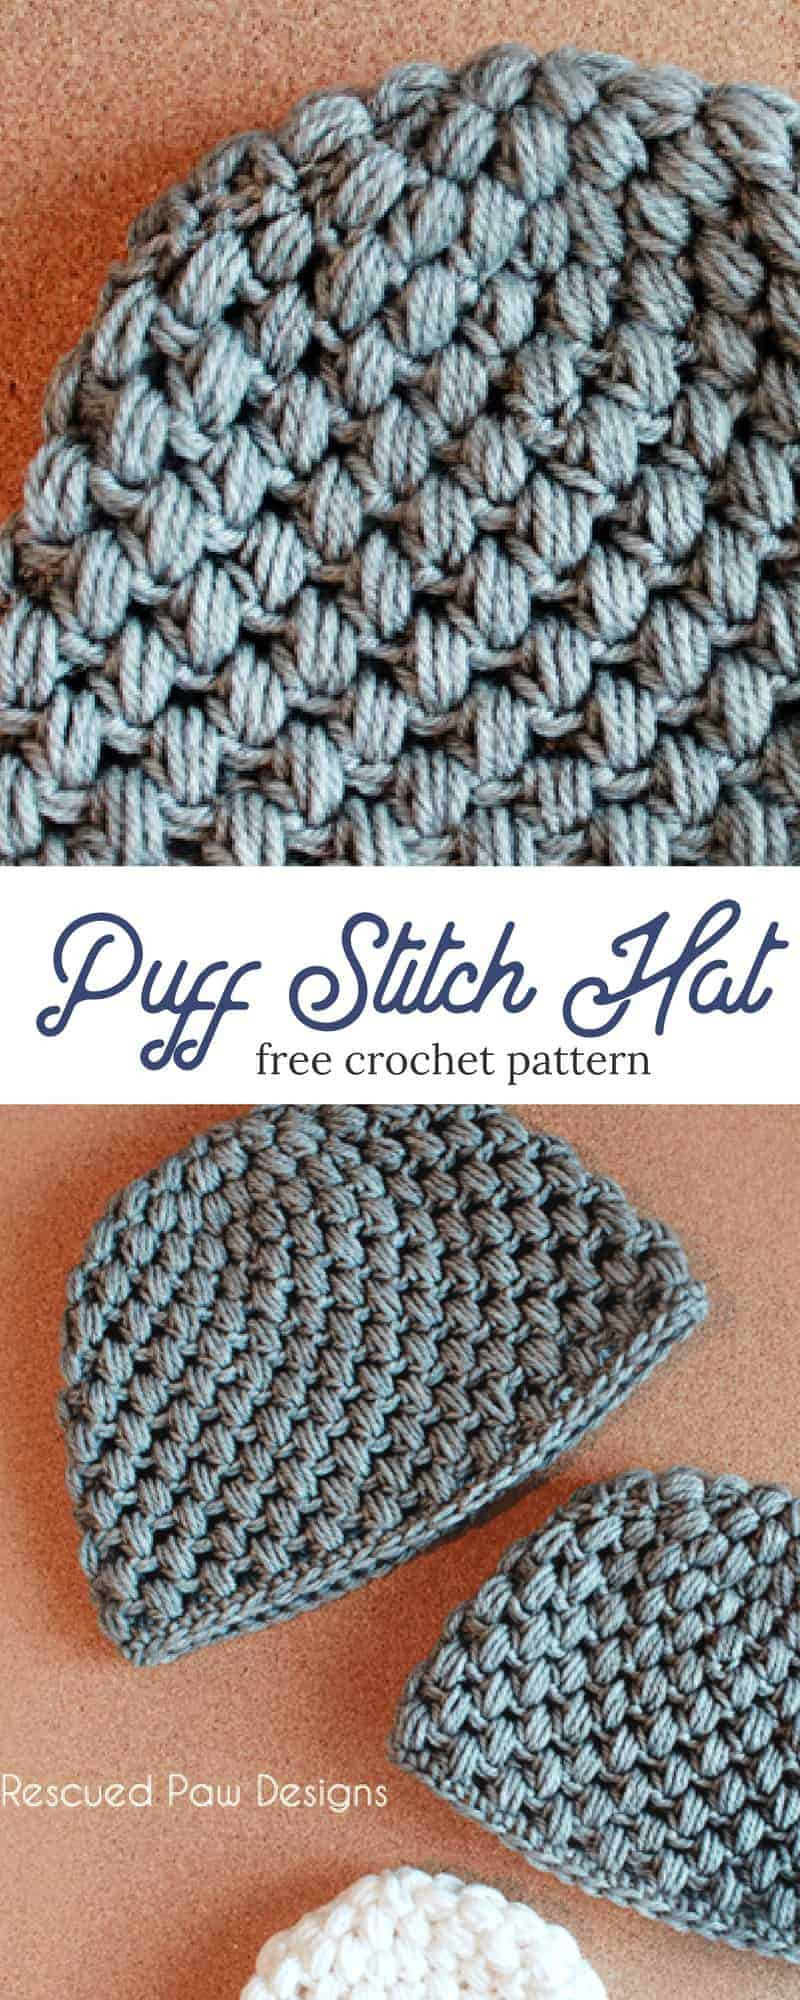 Beautiful Puff Stitch Crochet Hat Pattern ⋆ Rescued Paw Designs Crochet Puff Crochet Of Great 49 Ideas Puff Crochet